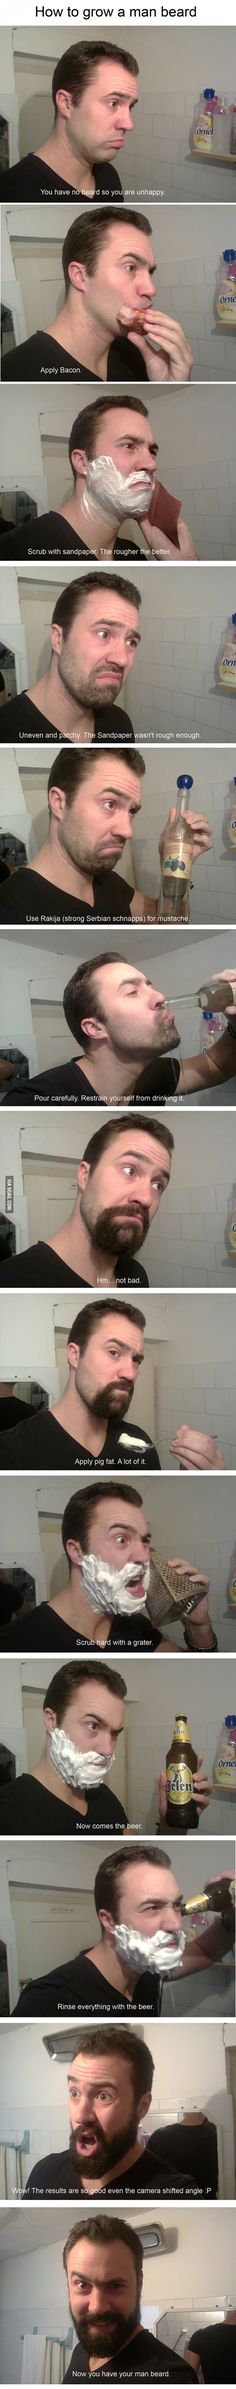 How to grow a man beard.